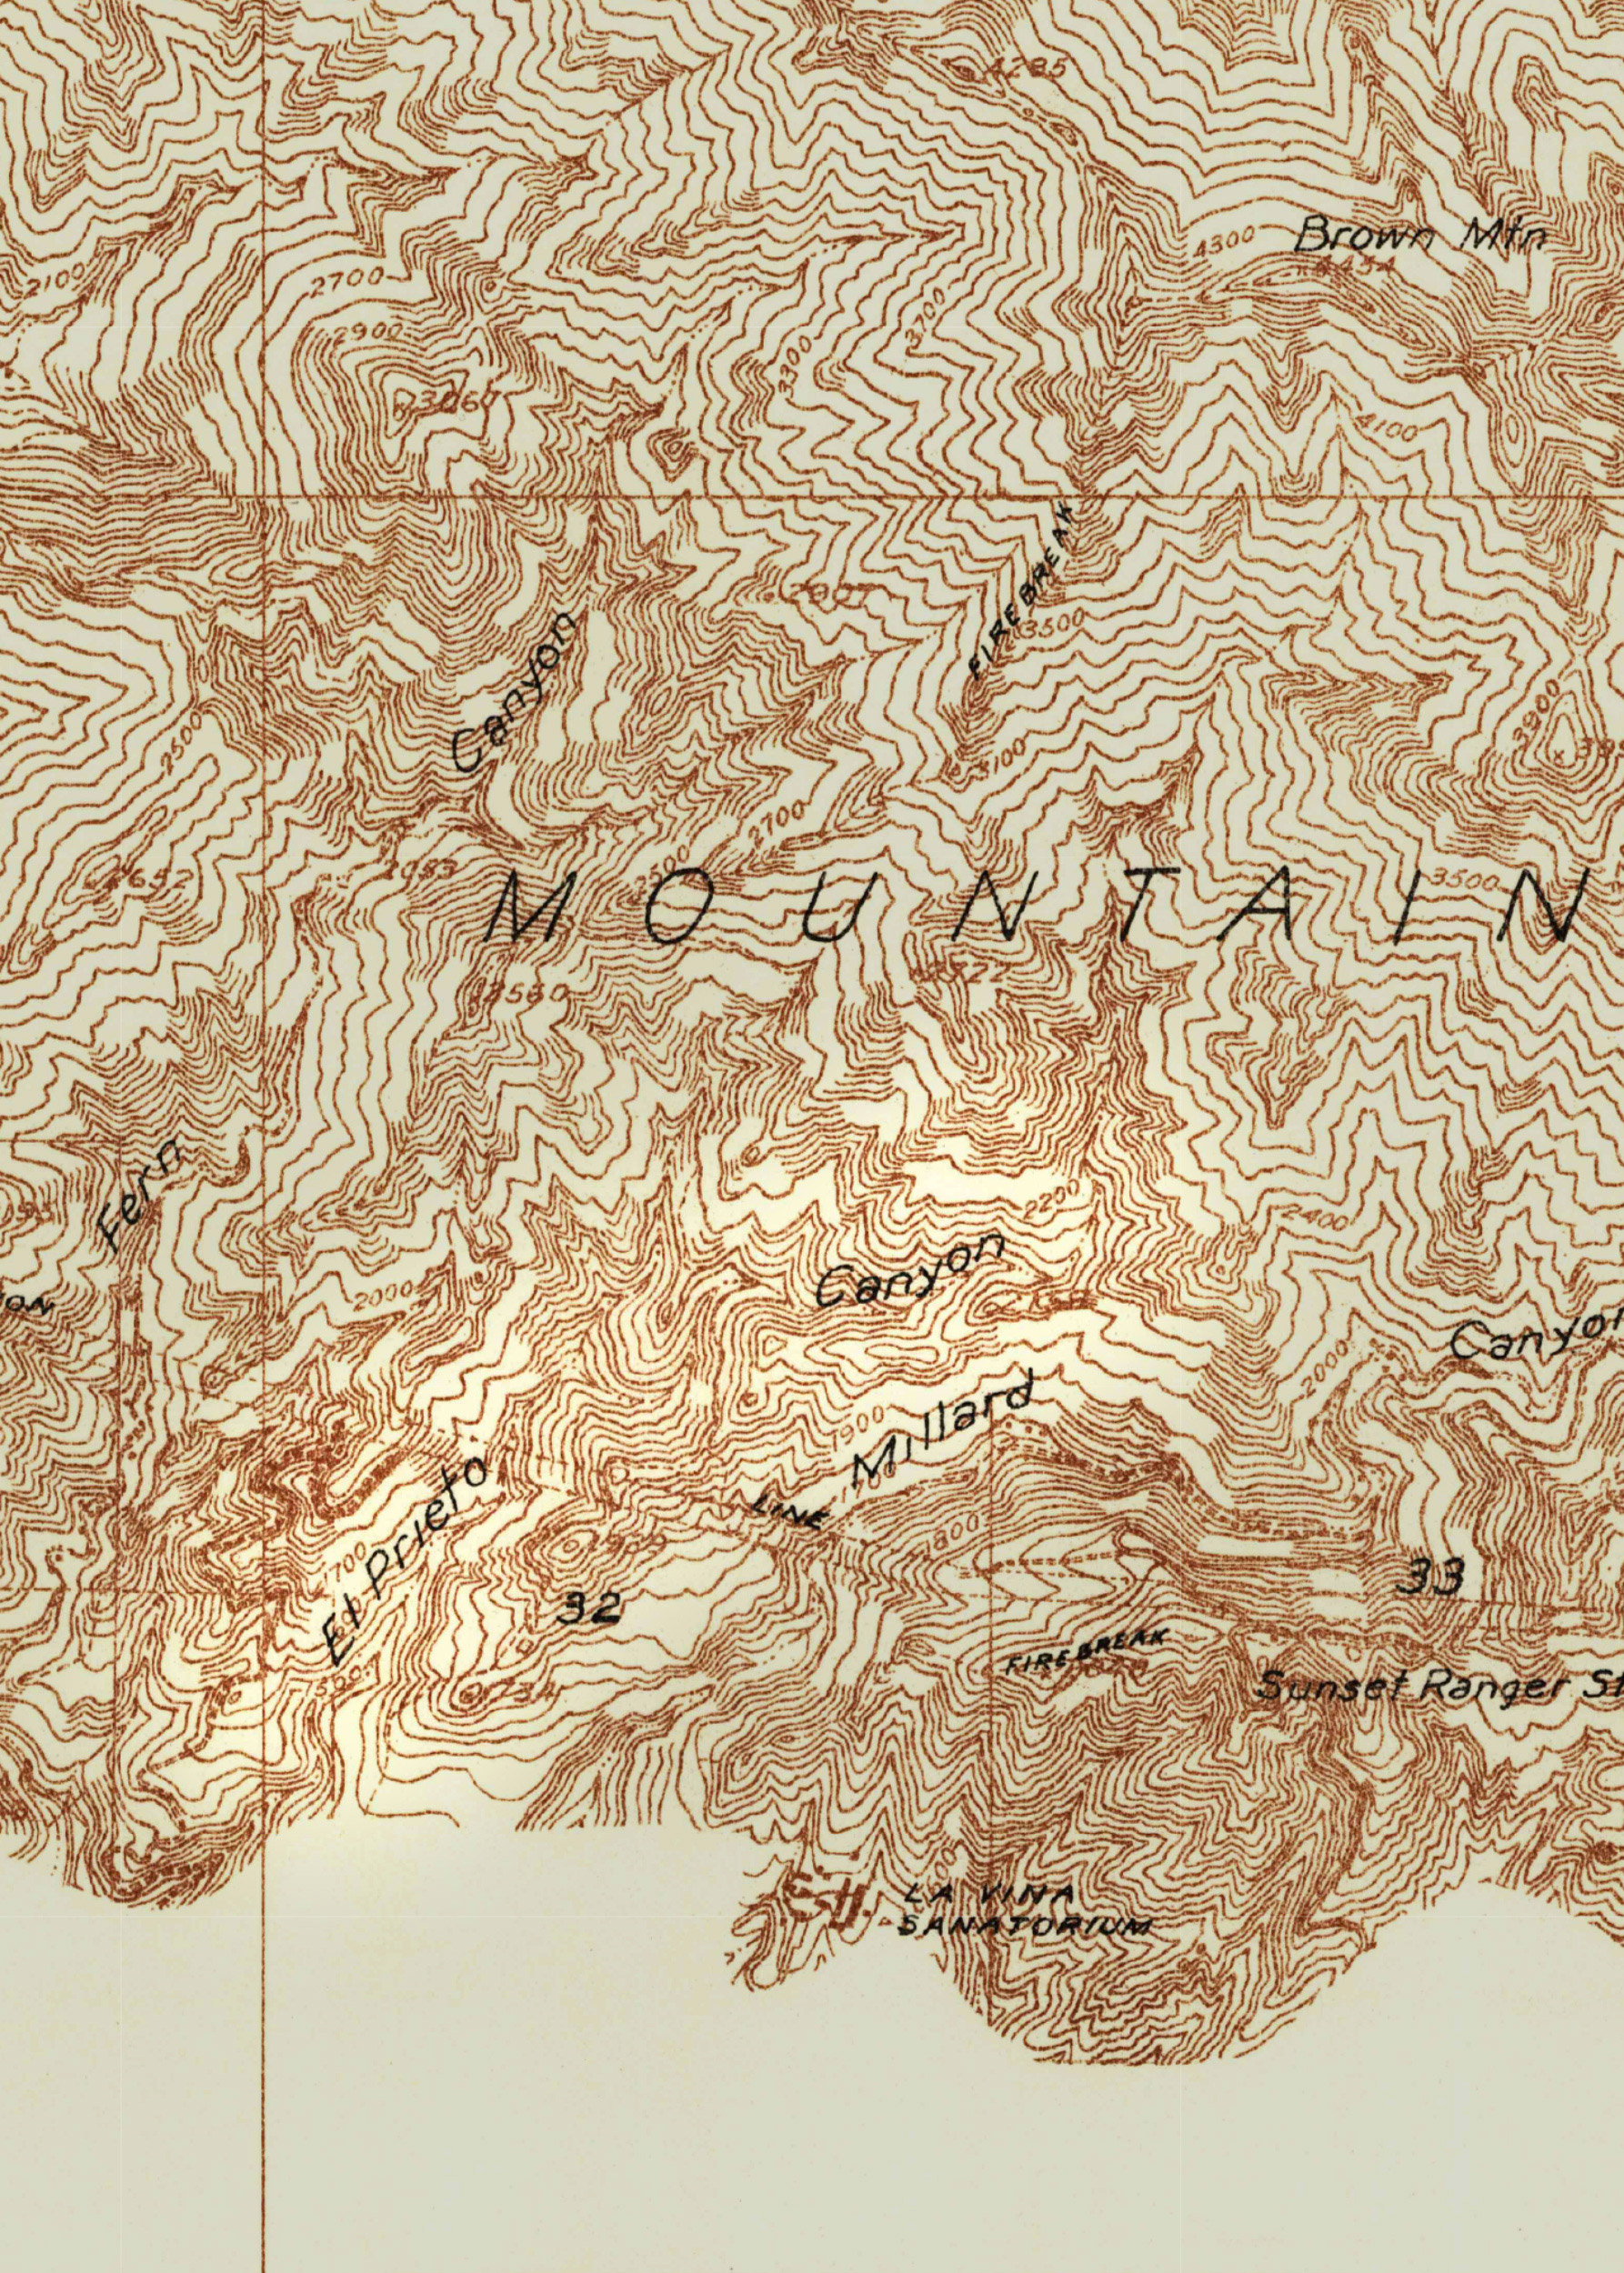 The 1934 USGS quadrangle map of the Mt. Lowe area notes the area as El Prieto Canyon